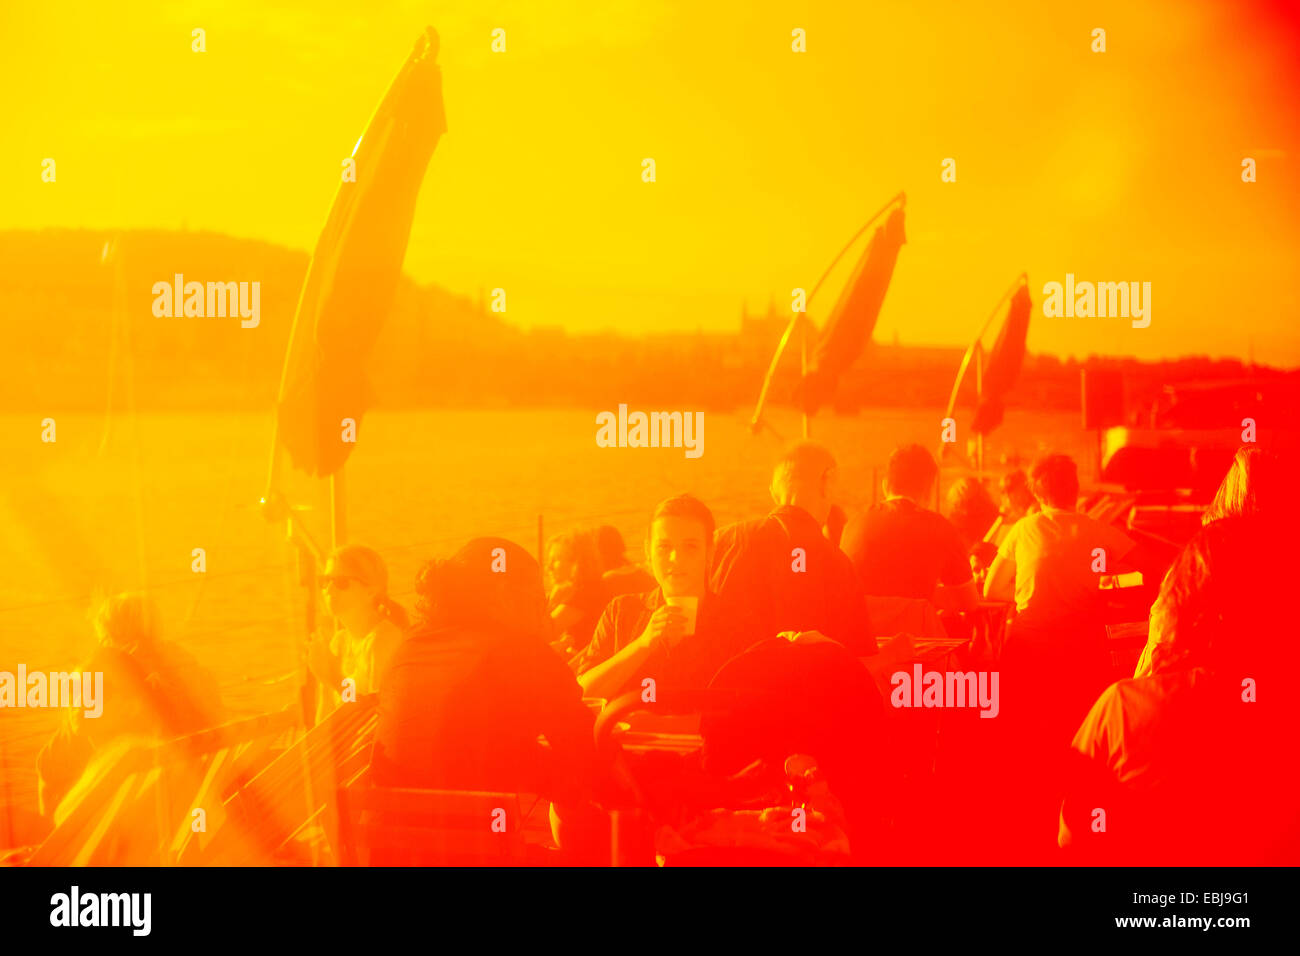 Vltava river, embankment, people, relax, drinking, entertainment, Stock Photo